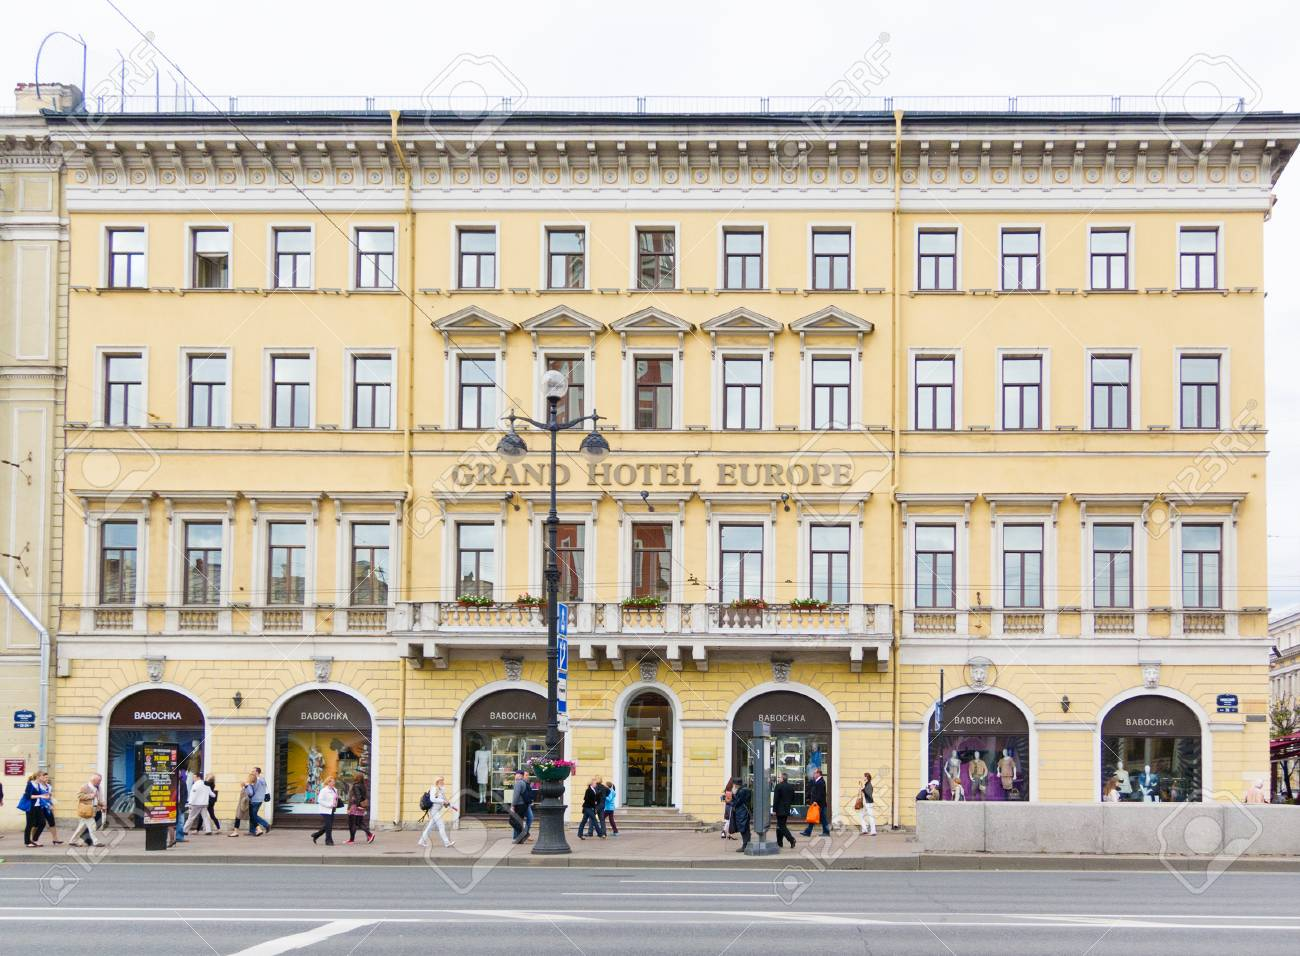 St Petersburg May 29 2011 The Grand Hotel Europe Side View Stock Photo Picture And Royalty Free Image Image 36940264